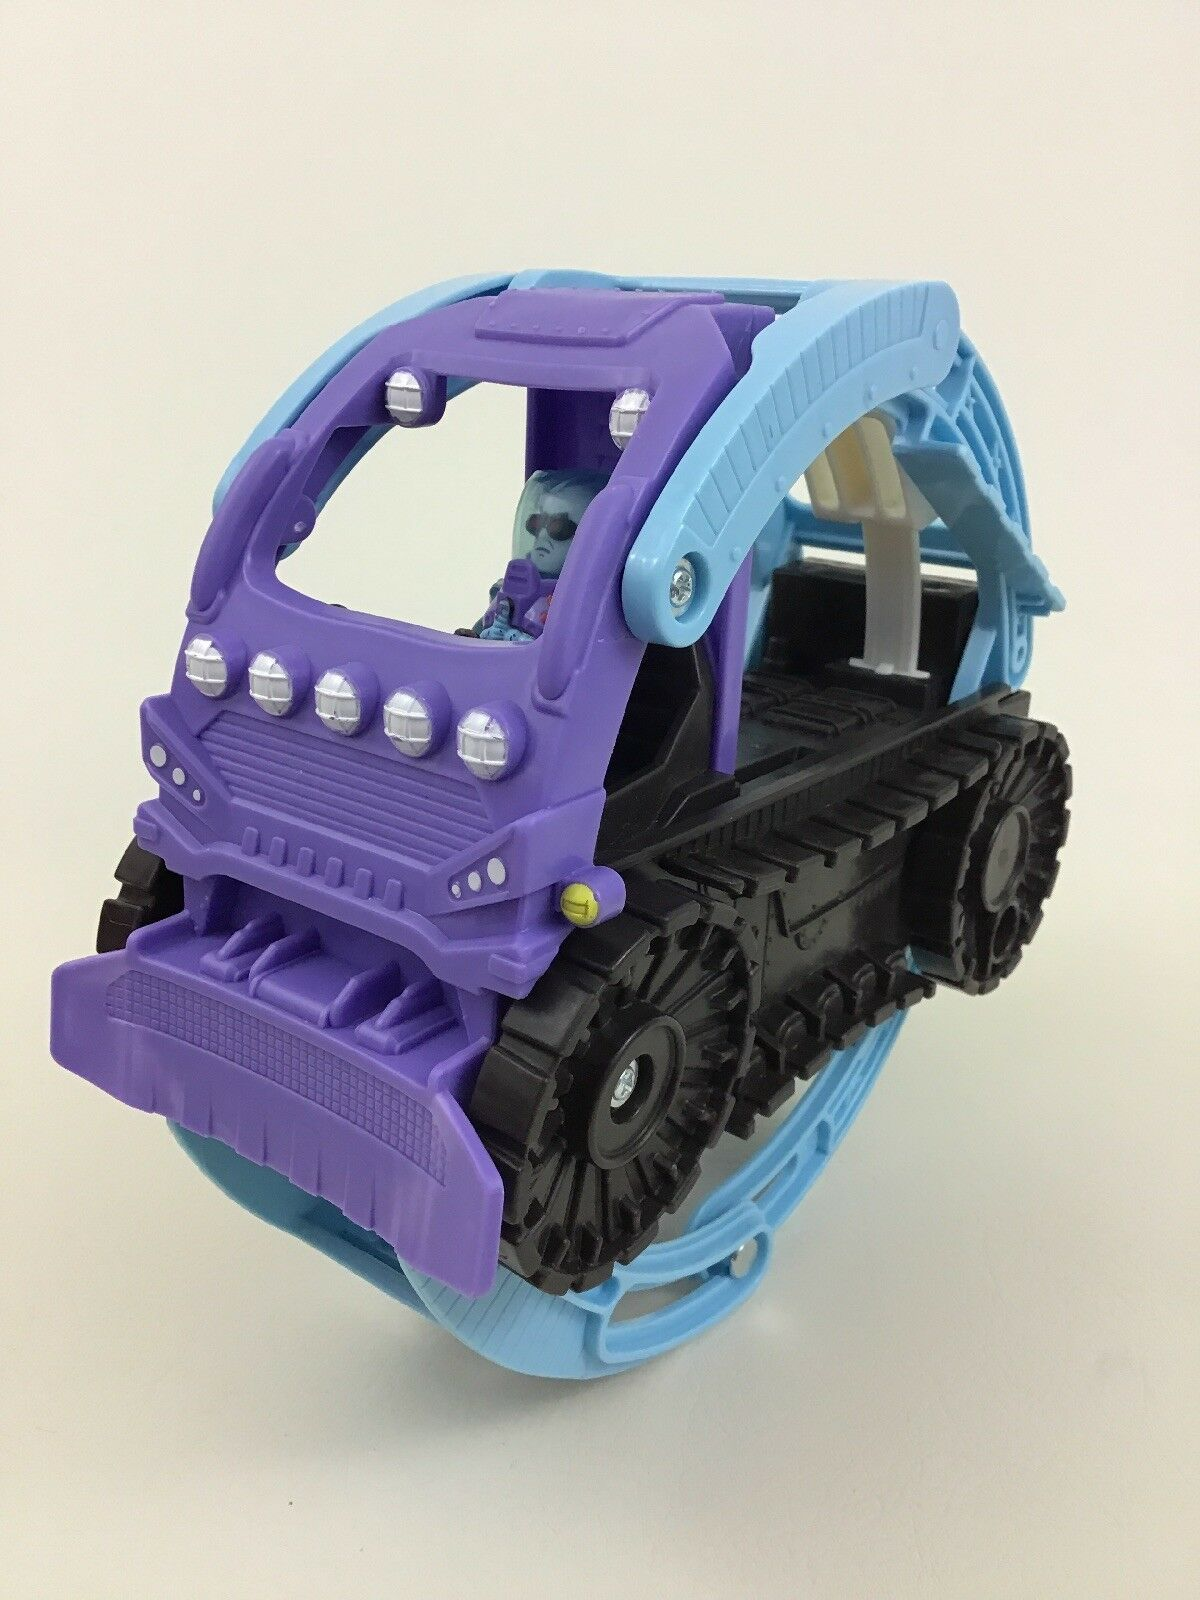 Fisher Price Imaginext DC Blue Beetle Car Vehicle used figure lot parts toy set